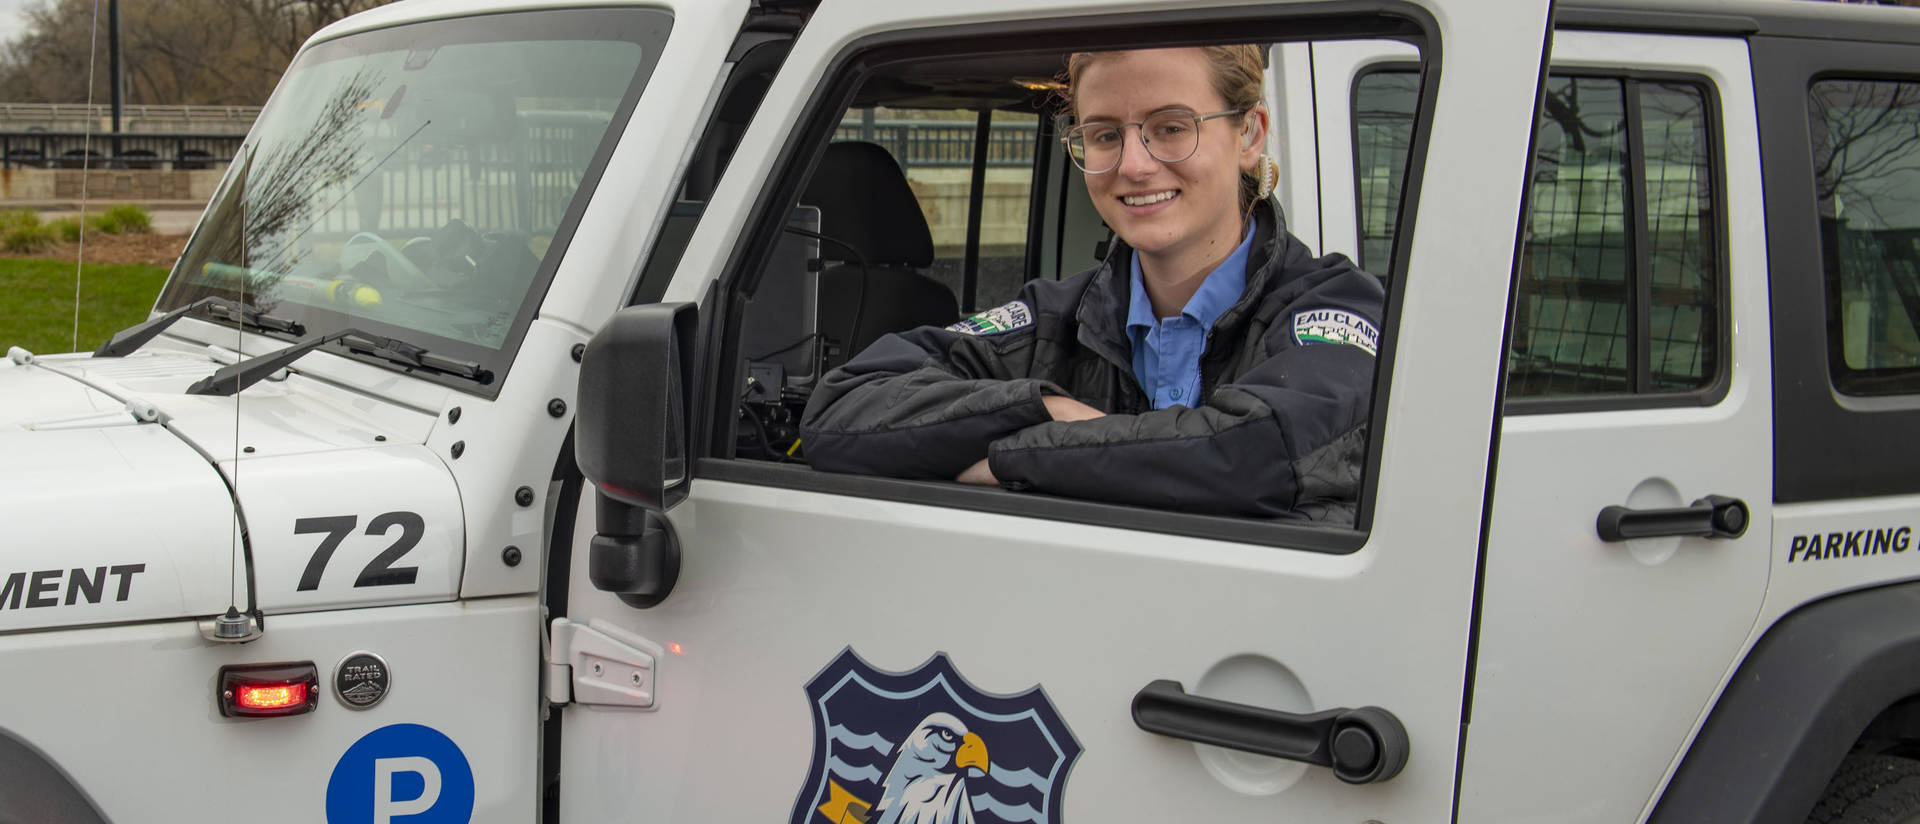 Breah Ostertag is ready to begin a career in law enforcement after earning a criminal justice degree in just two years. While going to college, she also worked as a community services officer for the Eau Claire Police Department.